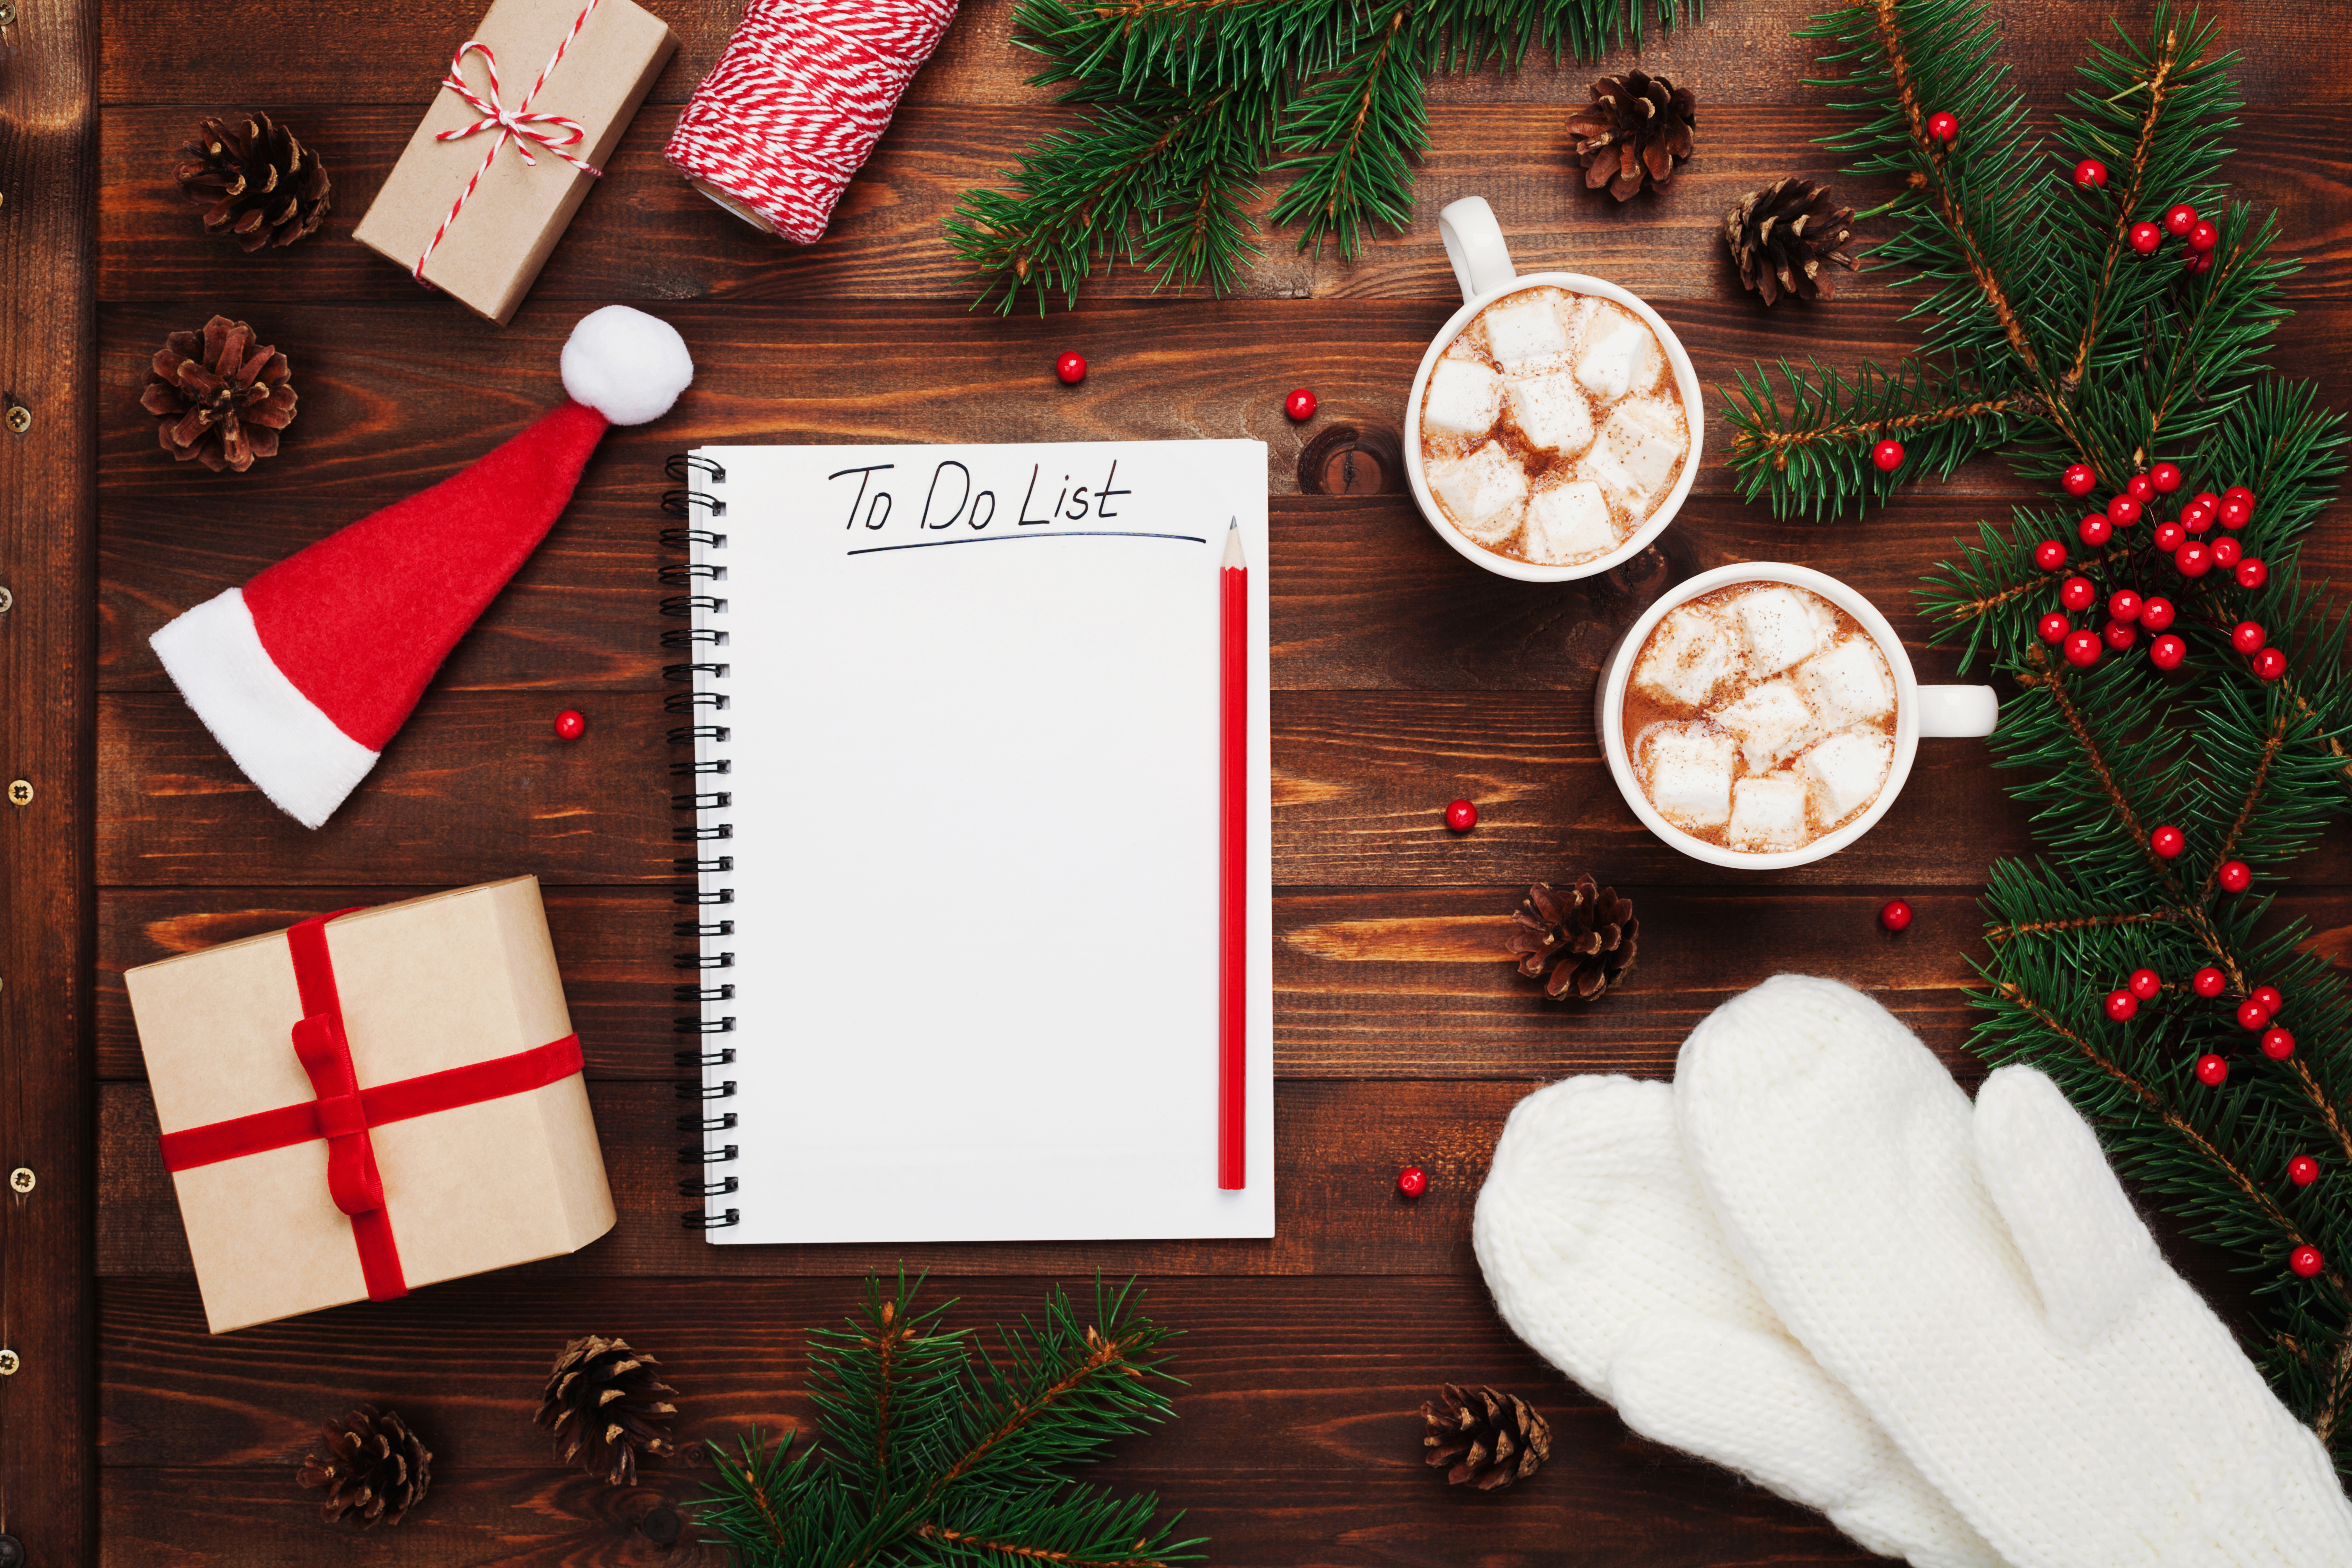 7 TIPS TO SURVIVE THE HOLIDAY MADNESS